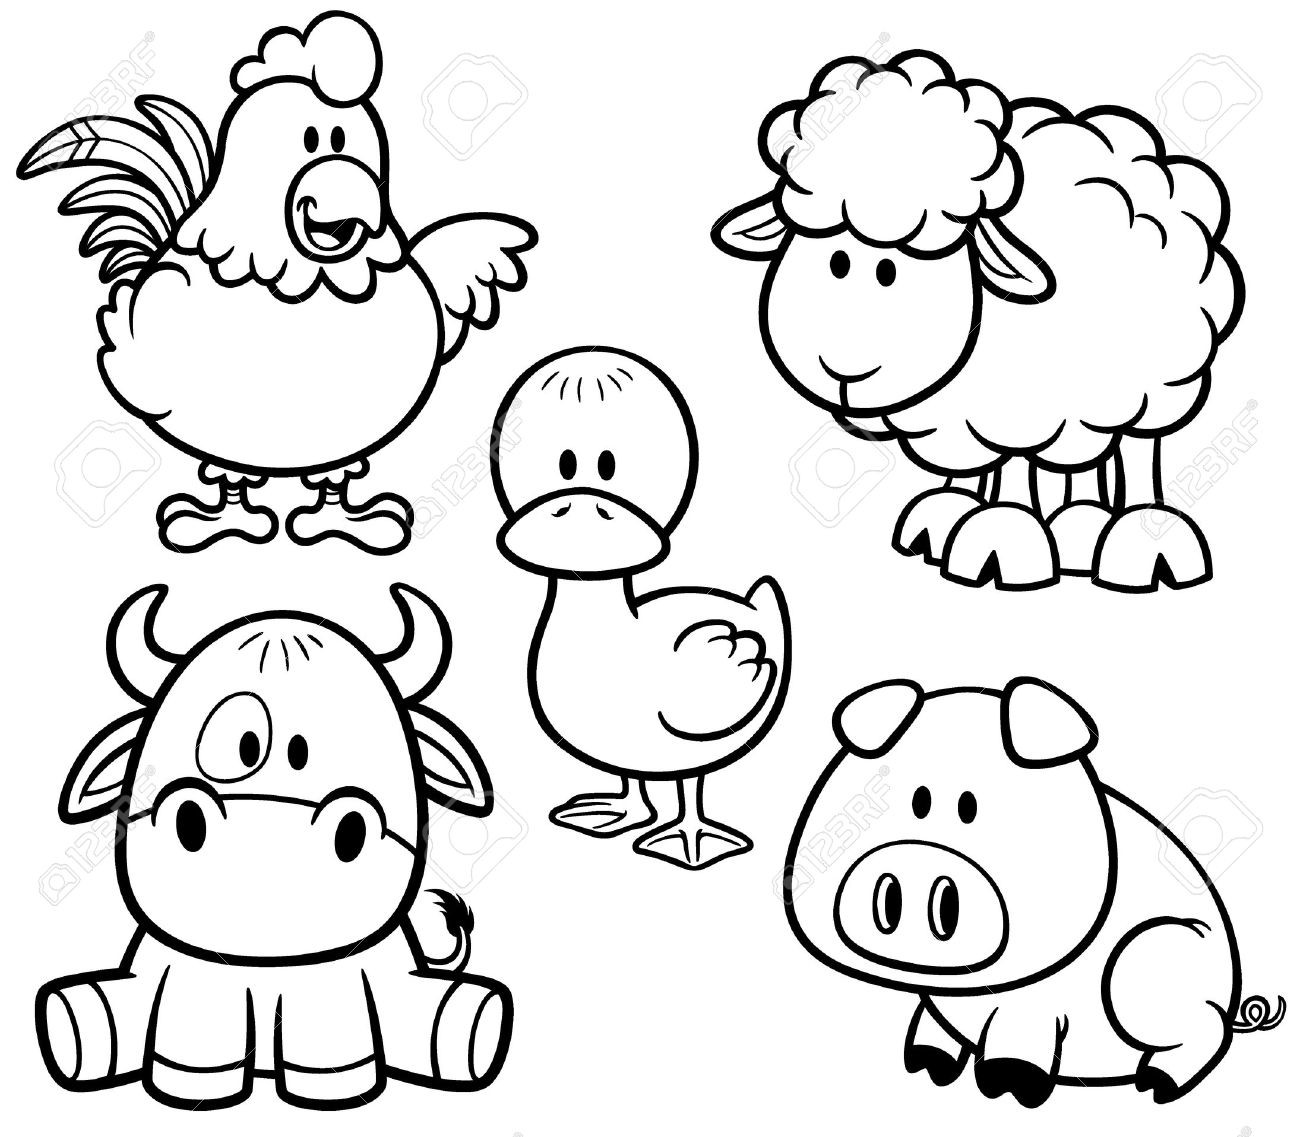 Printable Coloring Pages Of Animals  Cute Baby Farm Animal Coloring Pages Best Coloring Pages